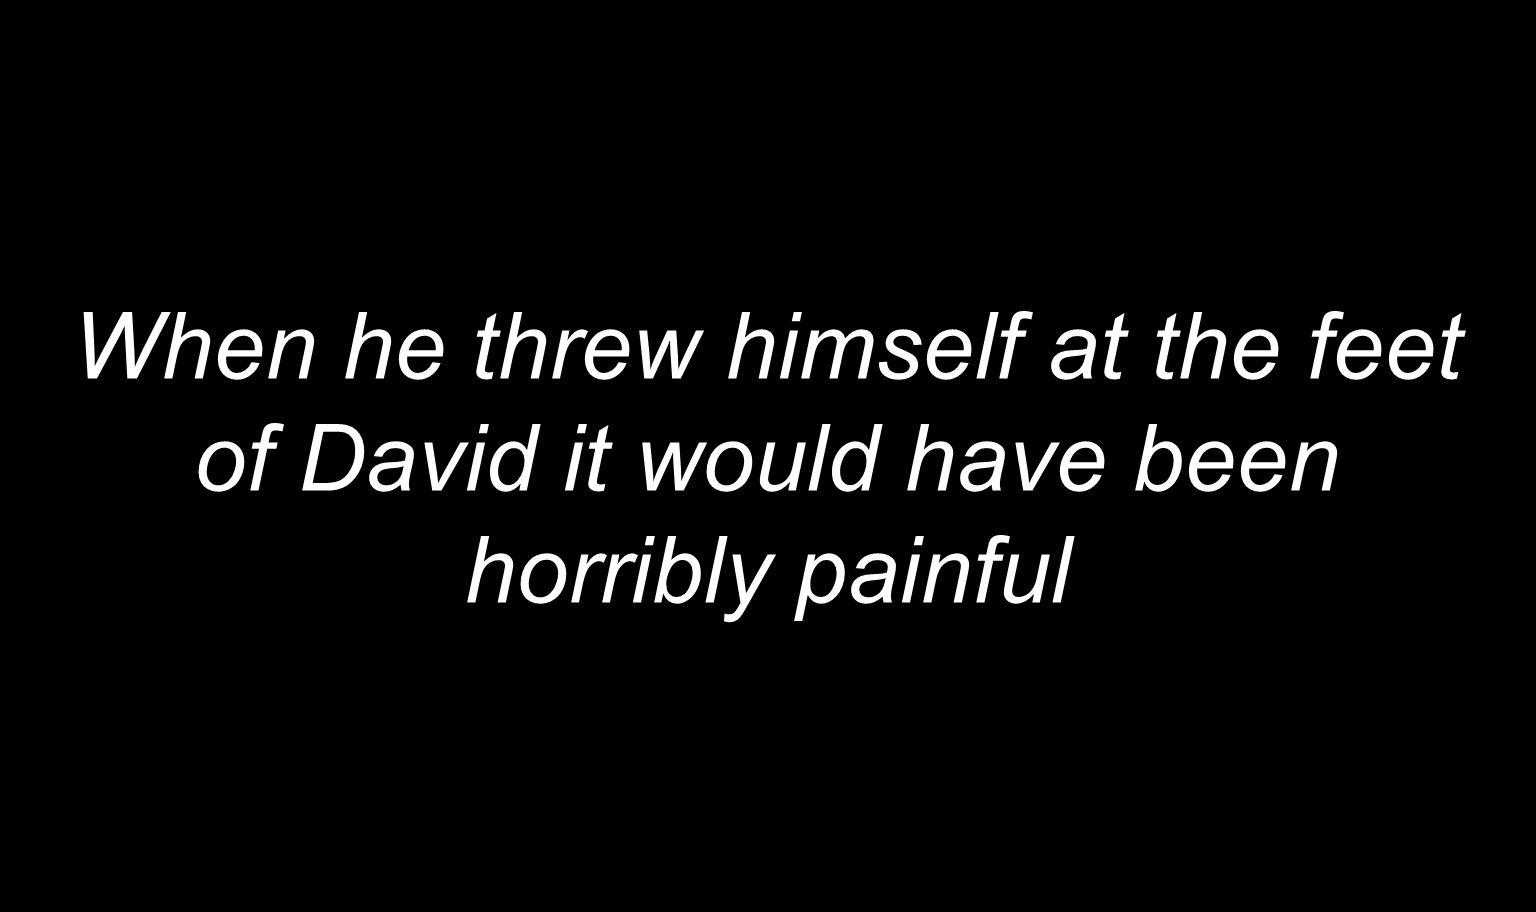 When he threw himself at the feet of David it would have been horribly painful